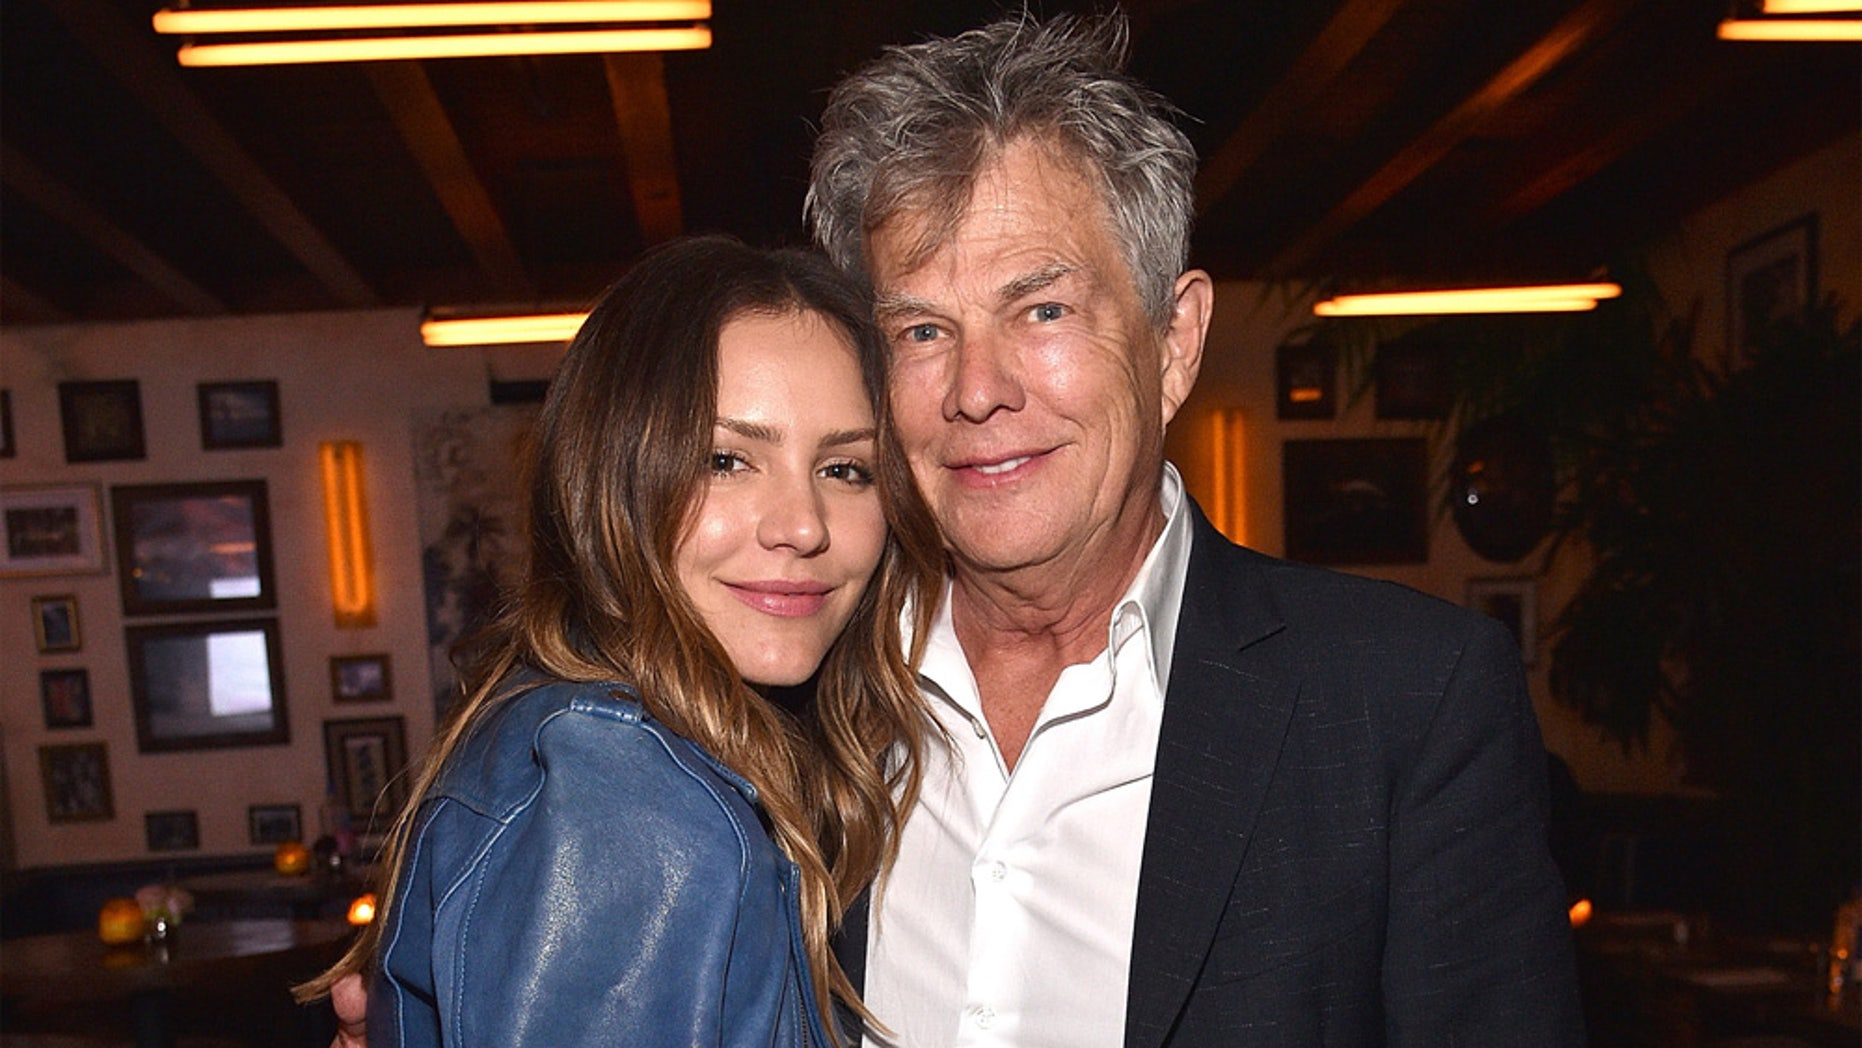 Katharine McPhee and David Foster attend Barbra Streisand's 75th birthday at Cafe Habana on April 24, 2017 in Malibu, California.